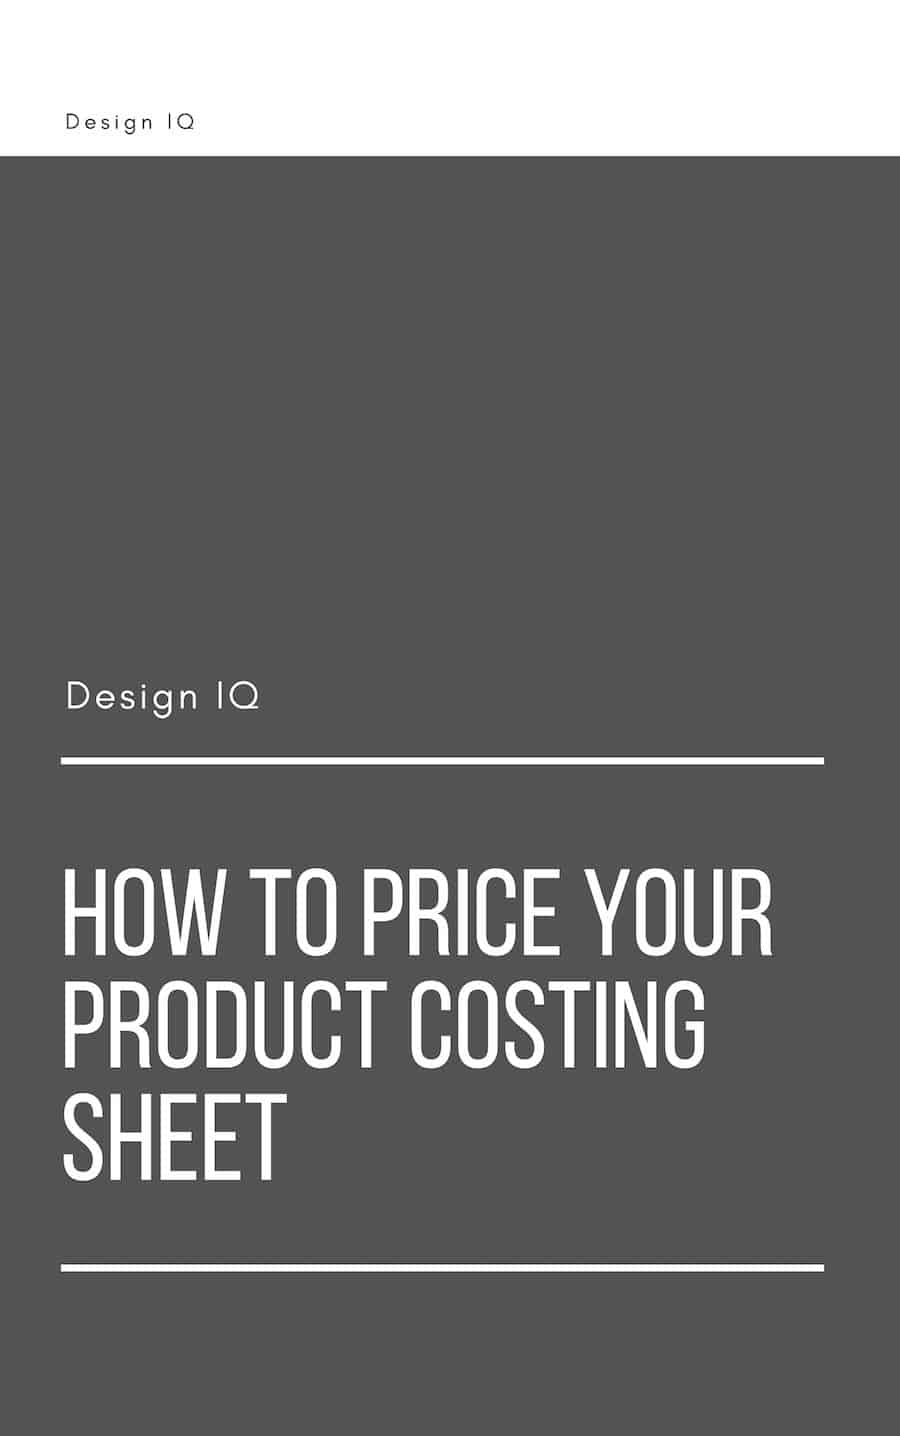 Graphic offering download of how to price your product